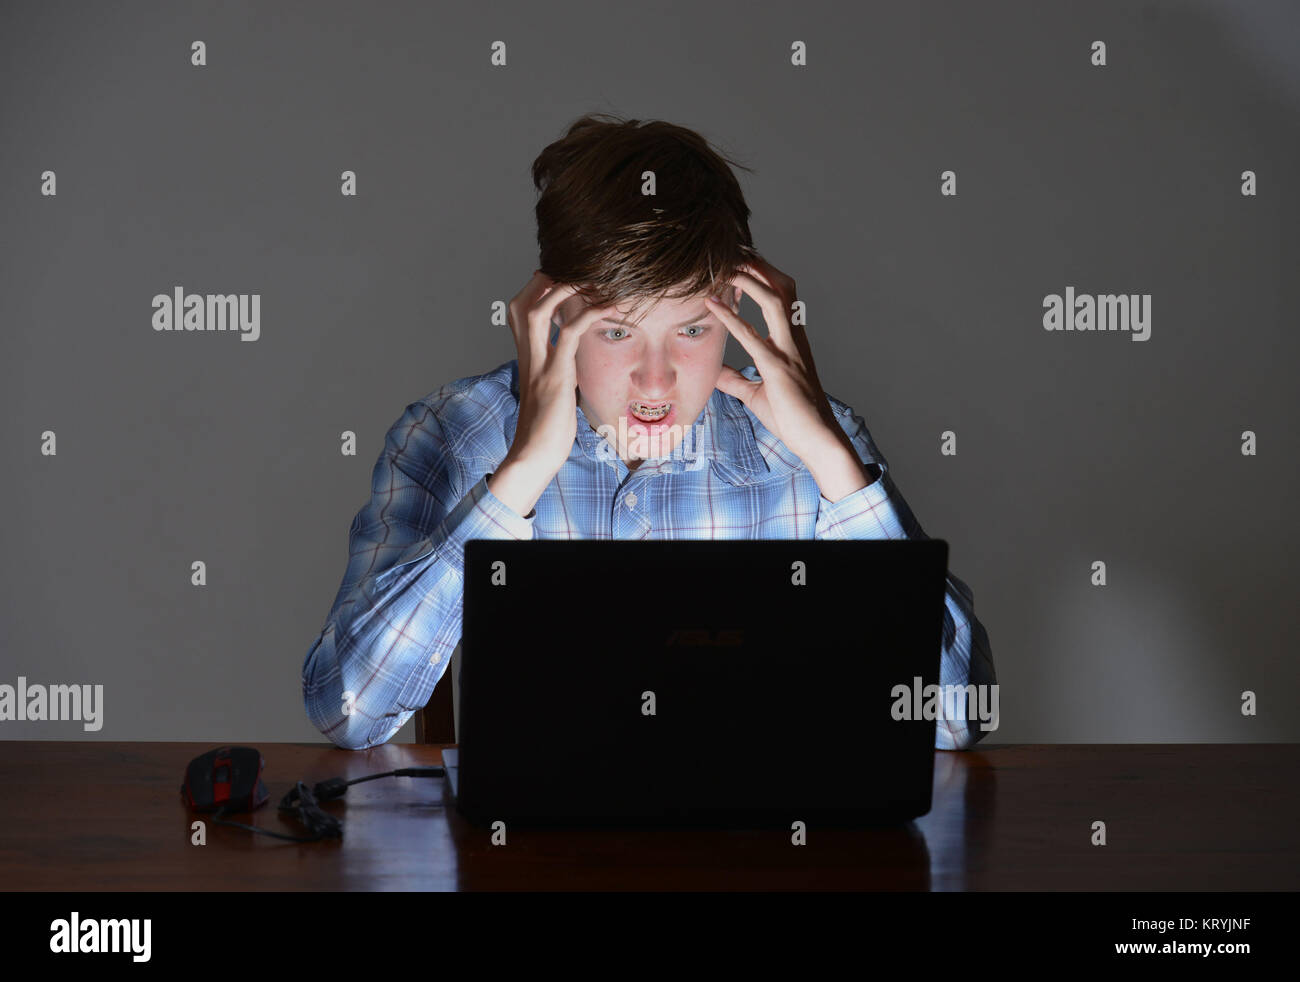 Youngster, computer, fury, Jugendlicher, Computer, Wut Stock Photo